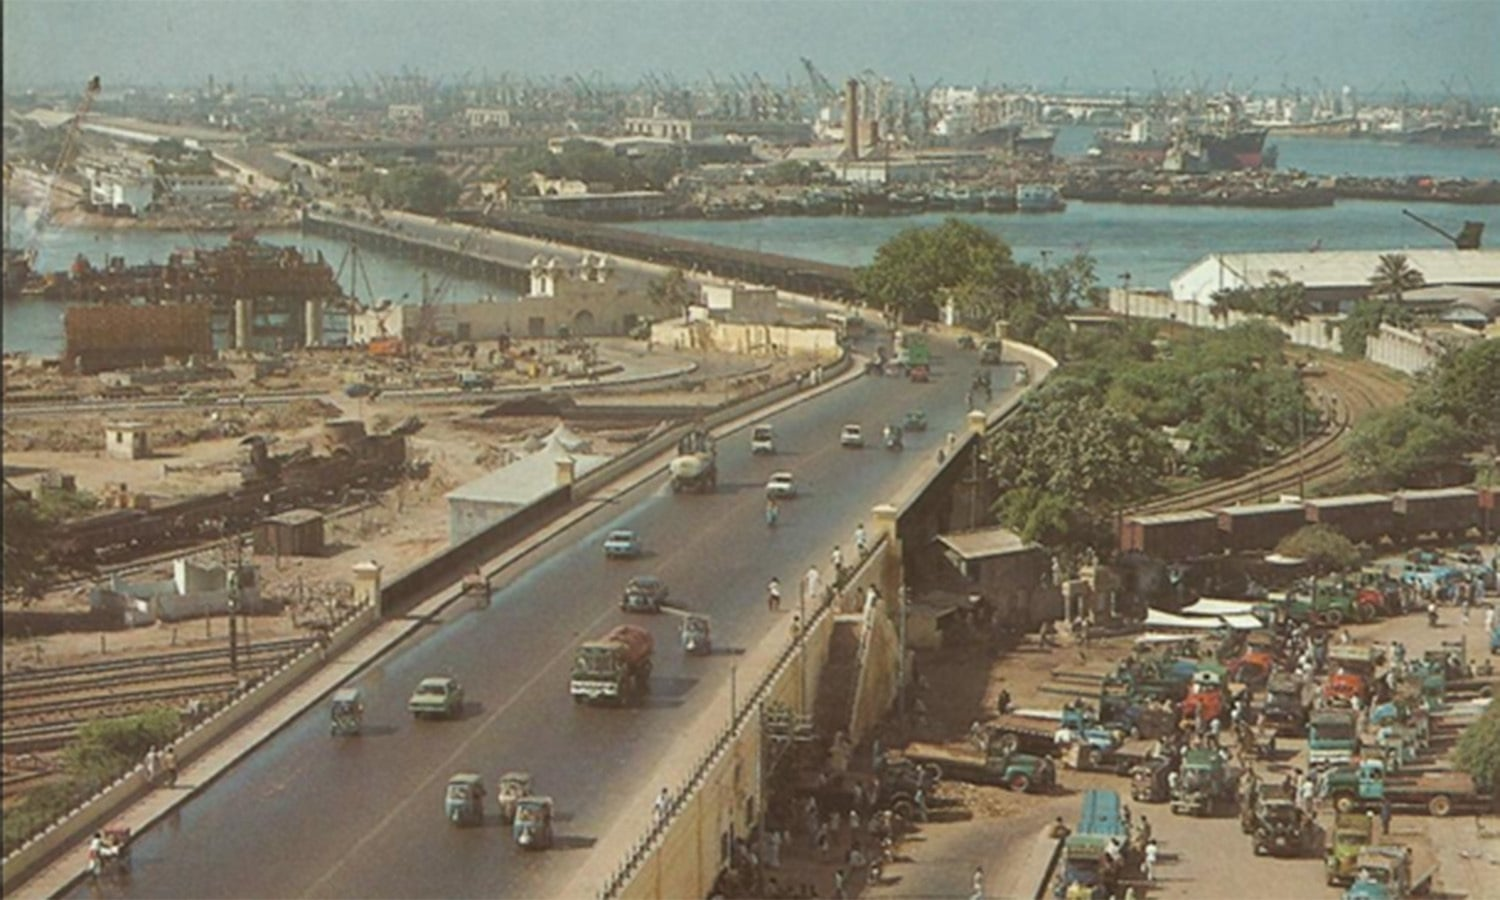 The Native Jetty Bridge in 1979. Till the early 1970s, this bridge was also an infamous 'suicide spot' for heartbroken Romeos and Juliets.